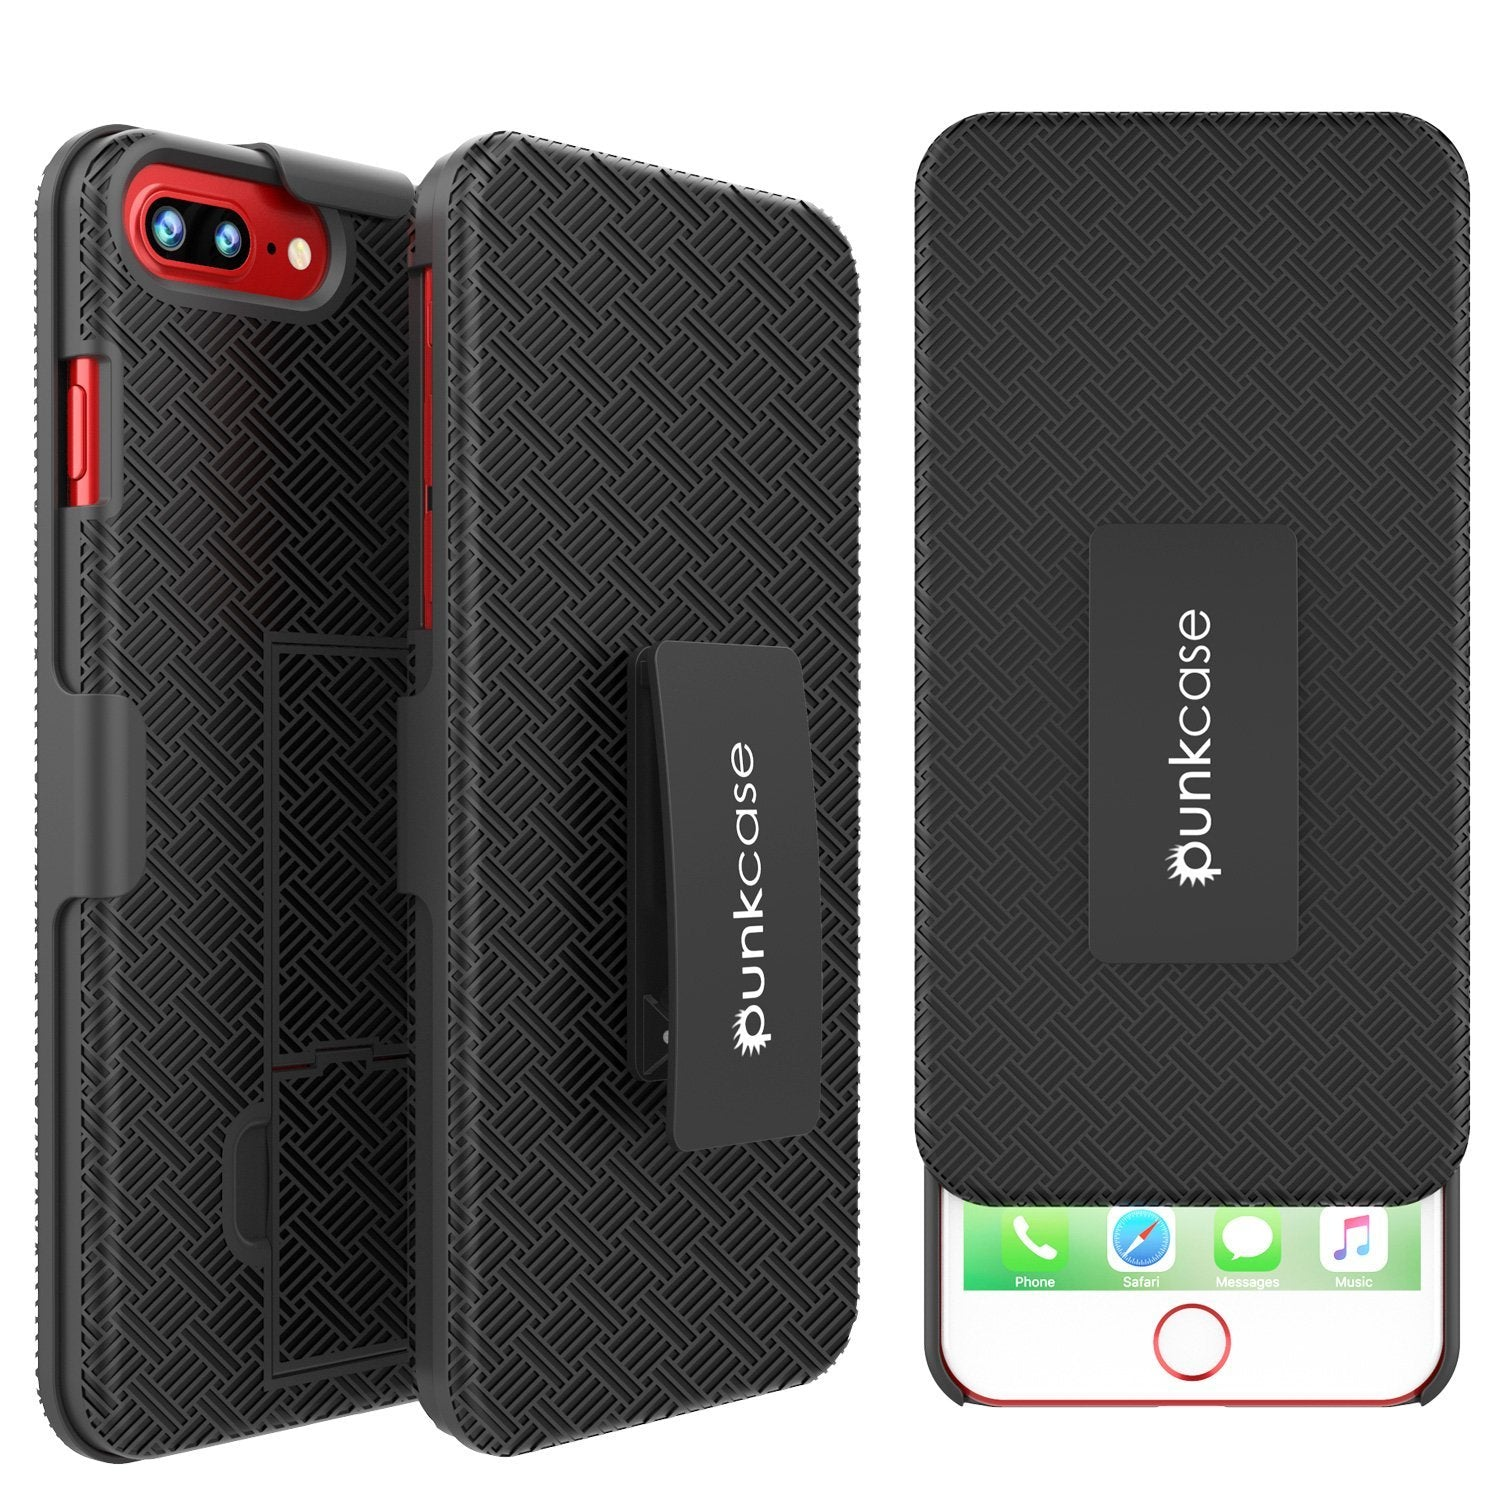 cheaper 6573e 91cd0 Punkcase iPhone 8+ / 7+ Plus Case With Tempered Glass Screen Protector,  Holster Belt Clip & Built-In Kickstand [Black]